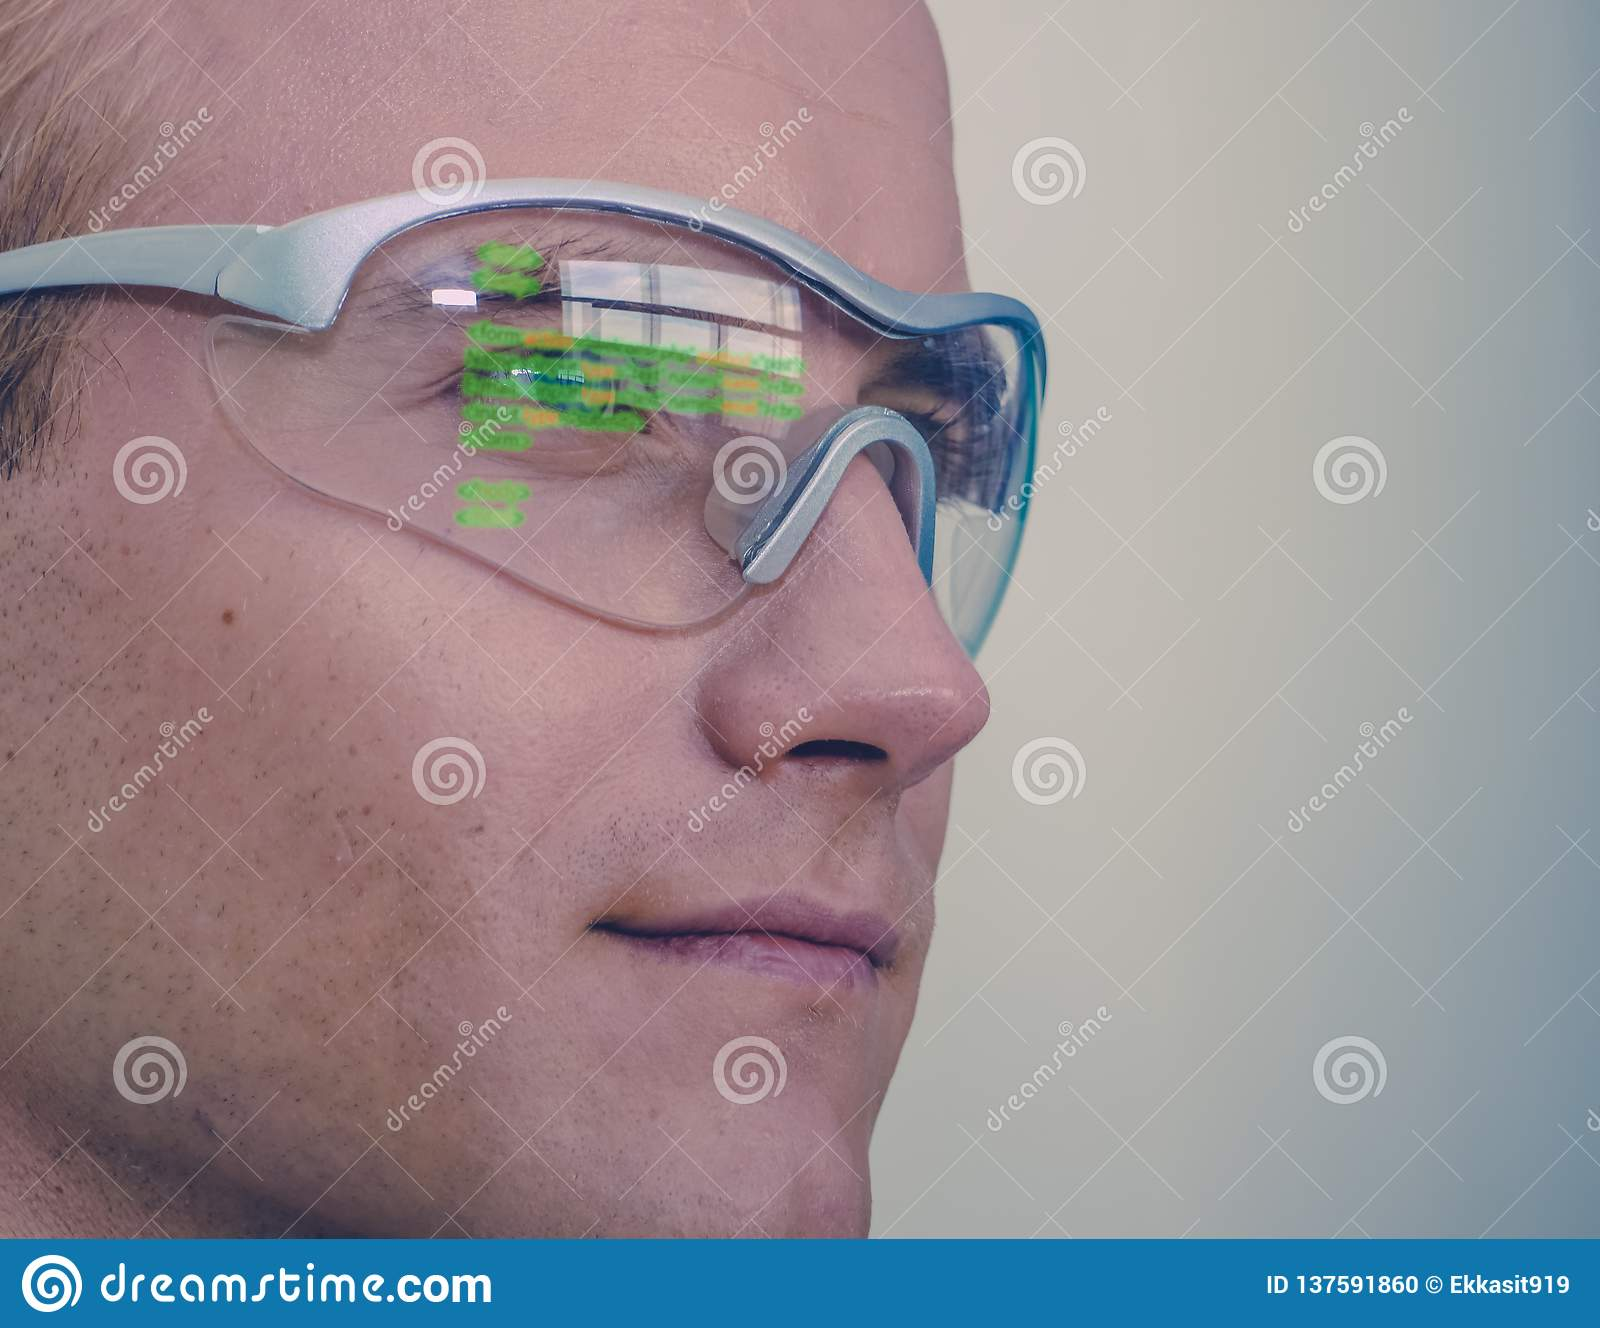 Smart glasses futuristic technology concept, man wear smart glasses with augmented reality to Managing field service and assembly,